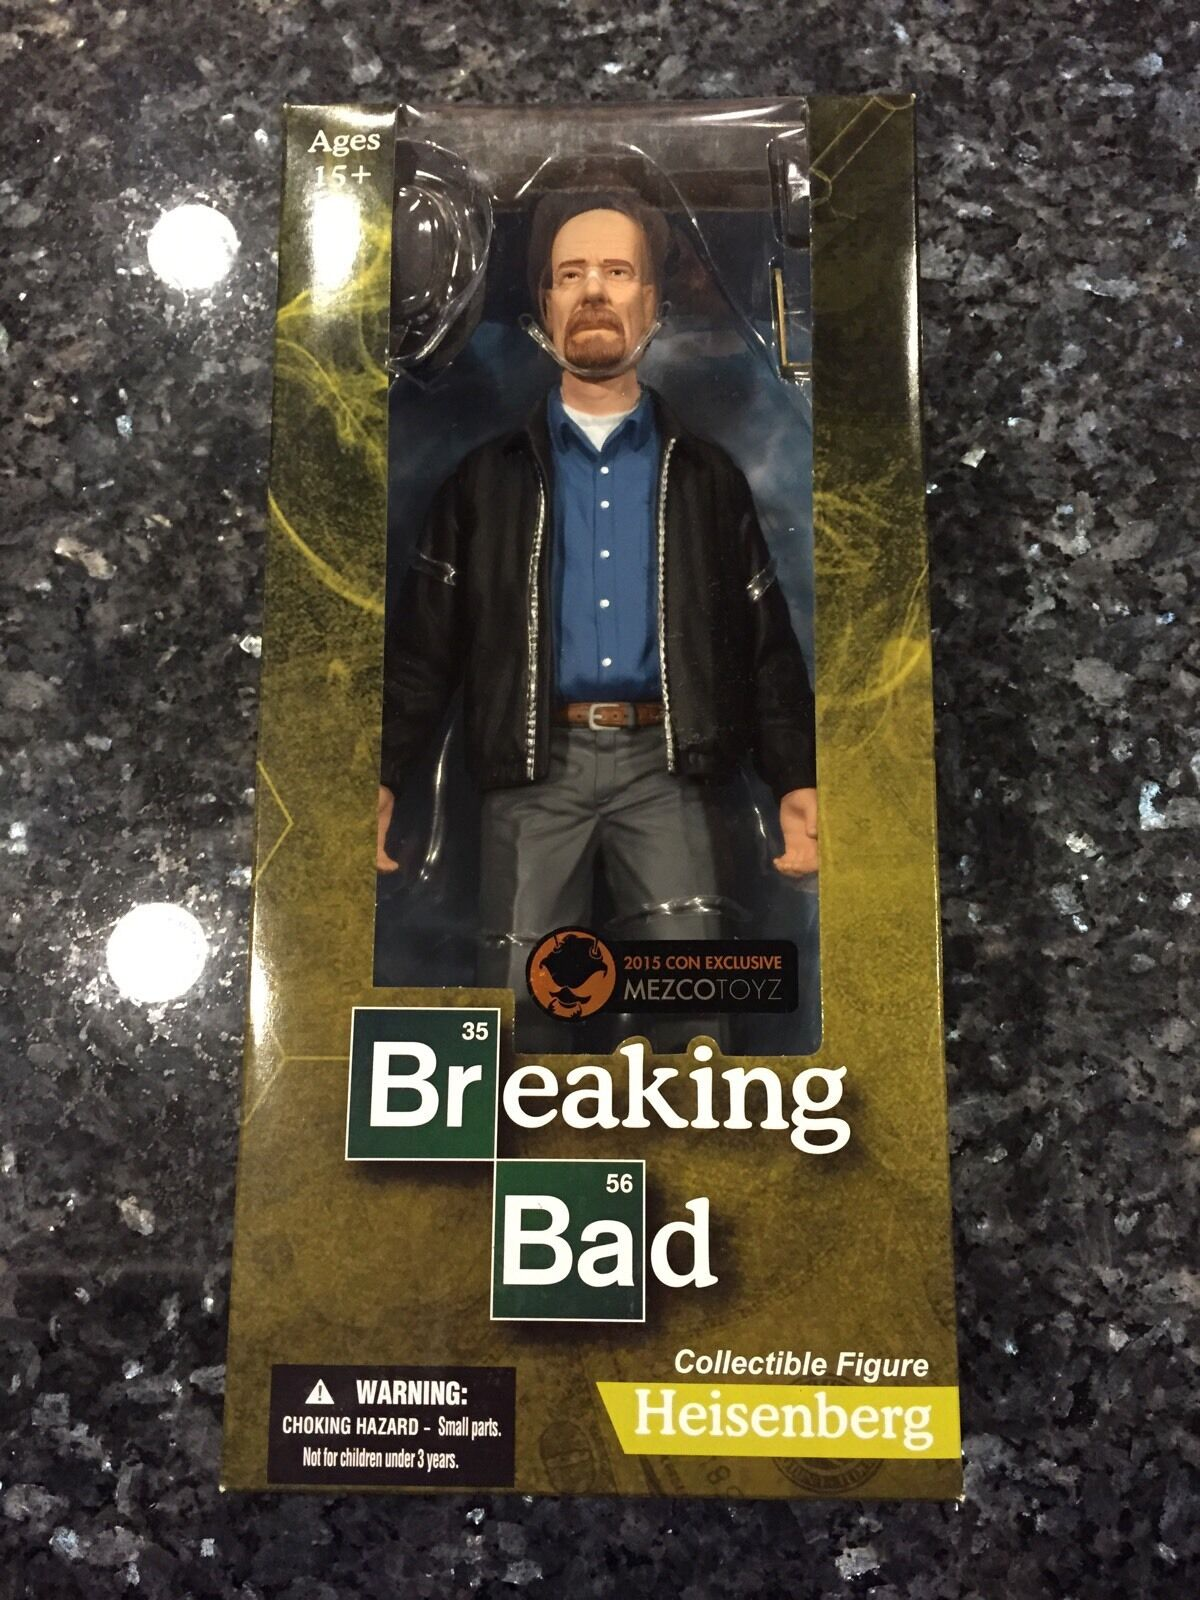 SDCC 2015 BREAKING BAD MEZCO TOYZ HEISENBERG WALTER WHITE 12 INCH ACTION FIGURE